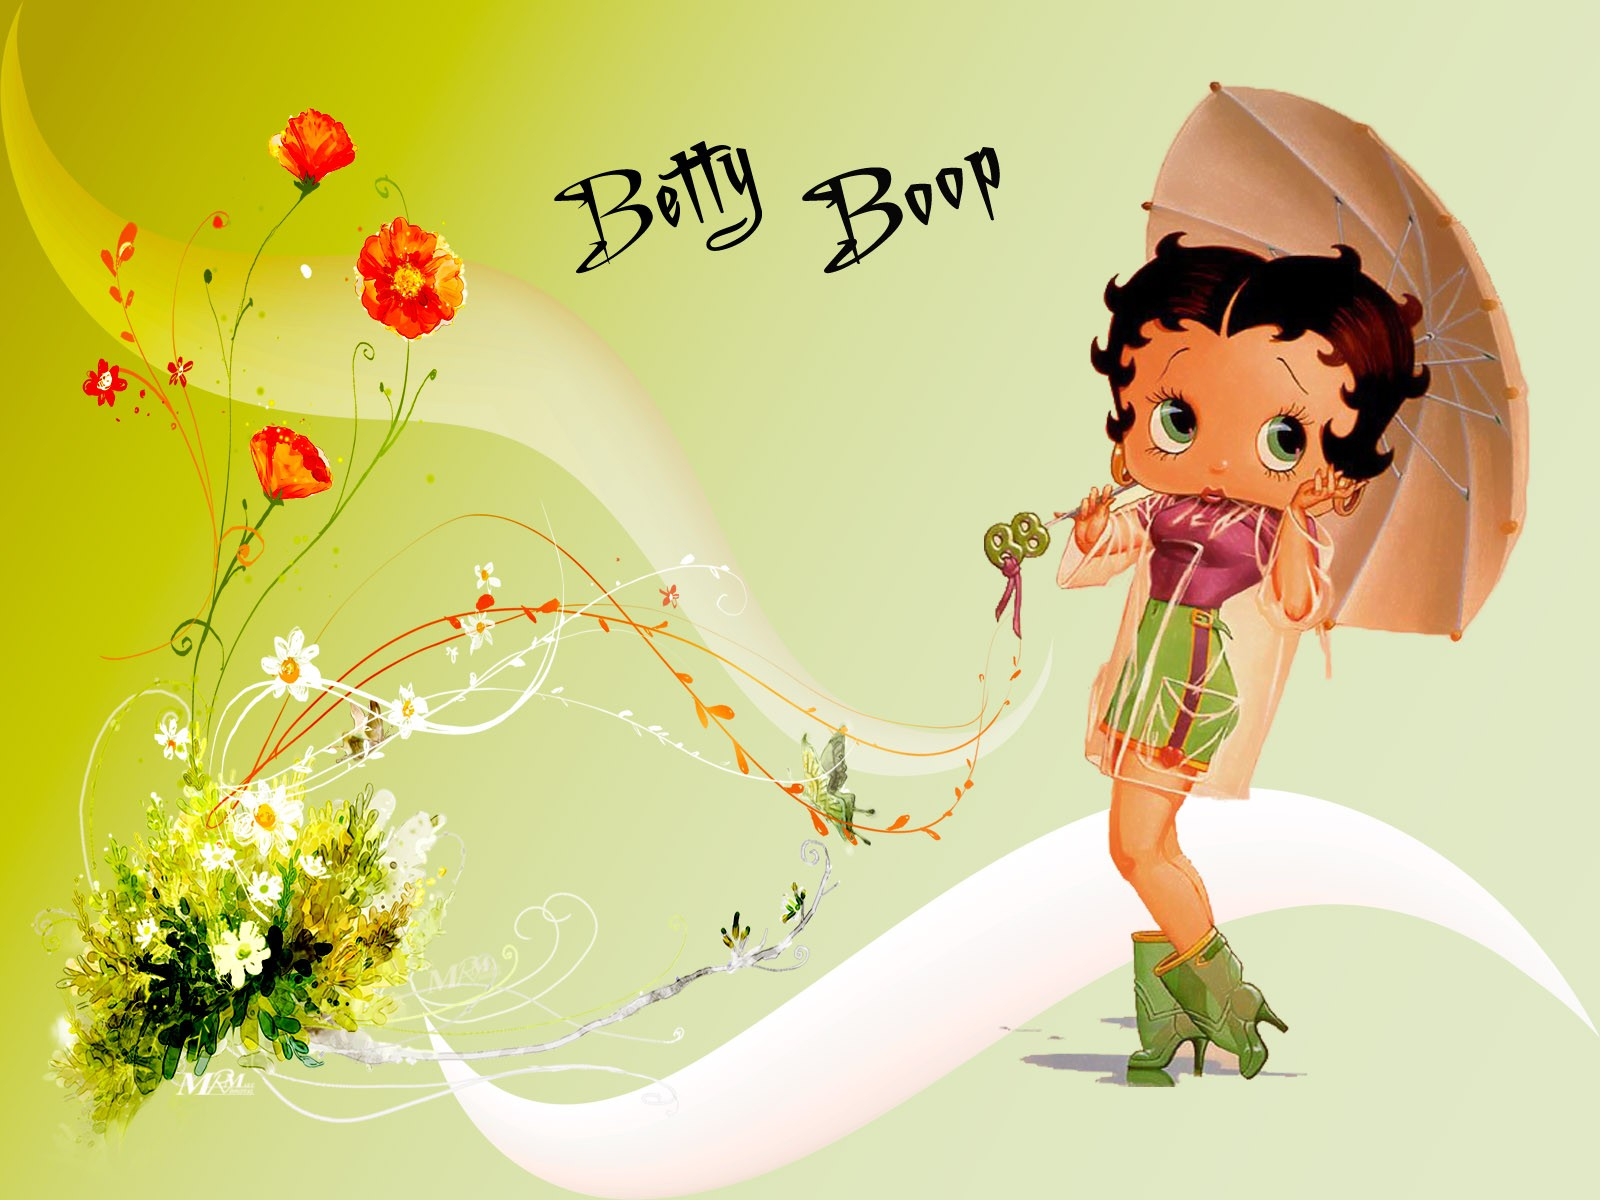 http://4.bp.blogspot.com/-Lg--S-EtAFI/TrxcfNerrAI/AAAAAAAADfw/a2dYCfLrzo0/s1600/Betty+Boop+wallpaper+Kids+By+mrm.jpg